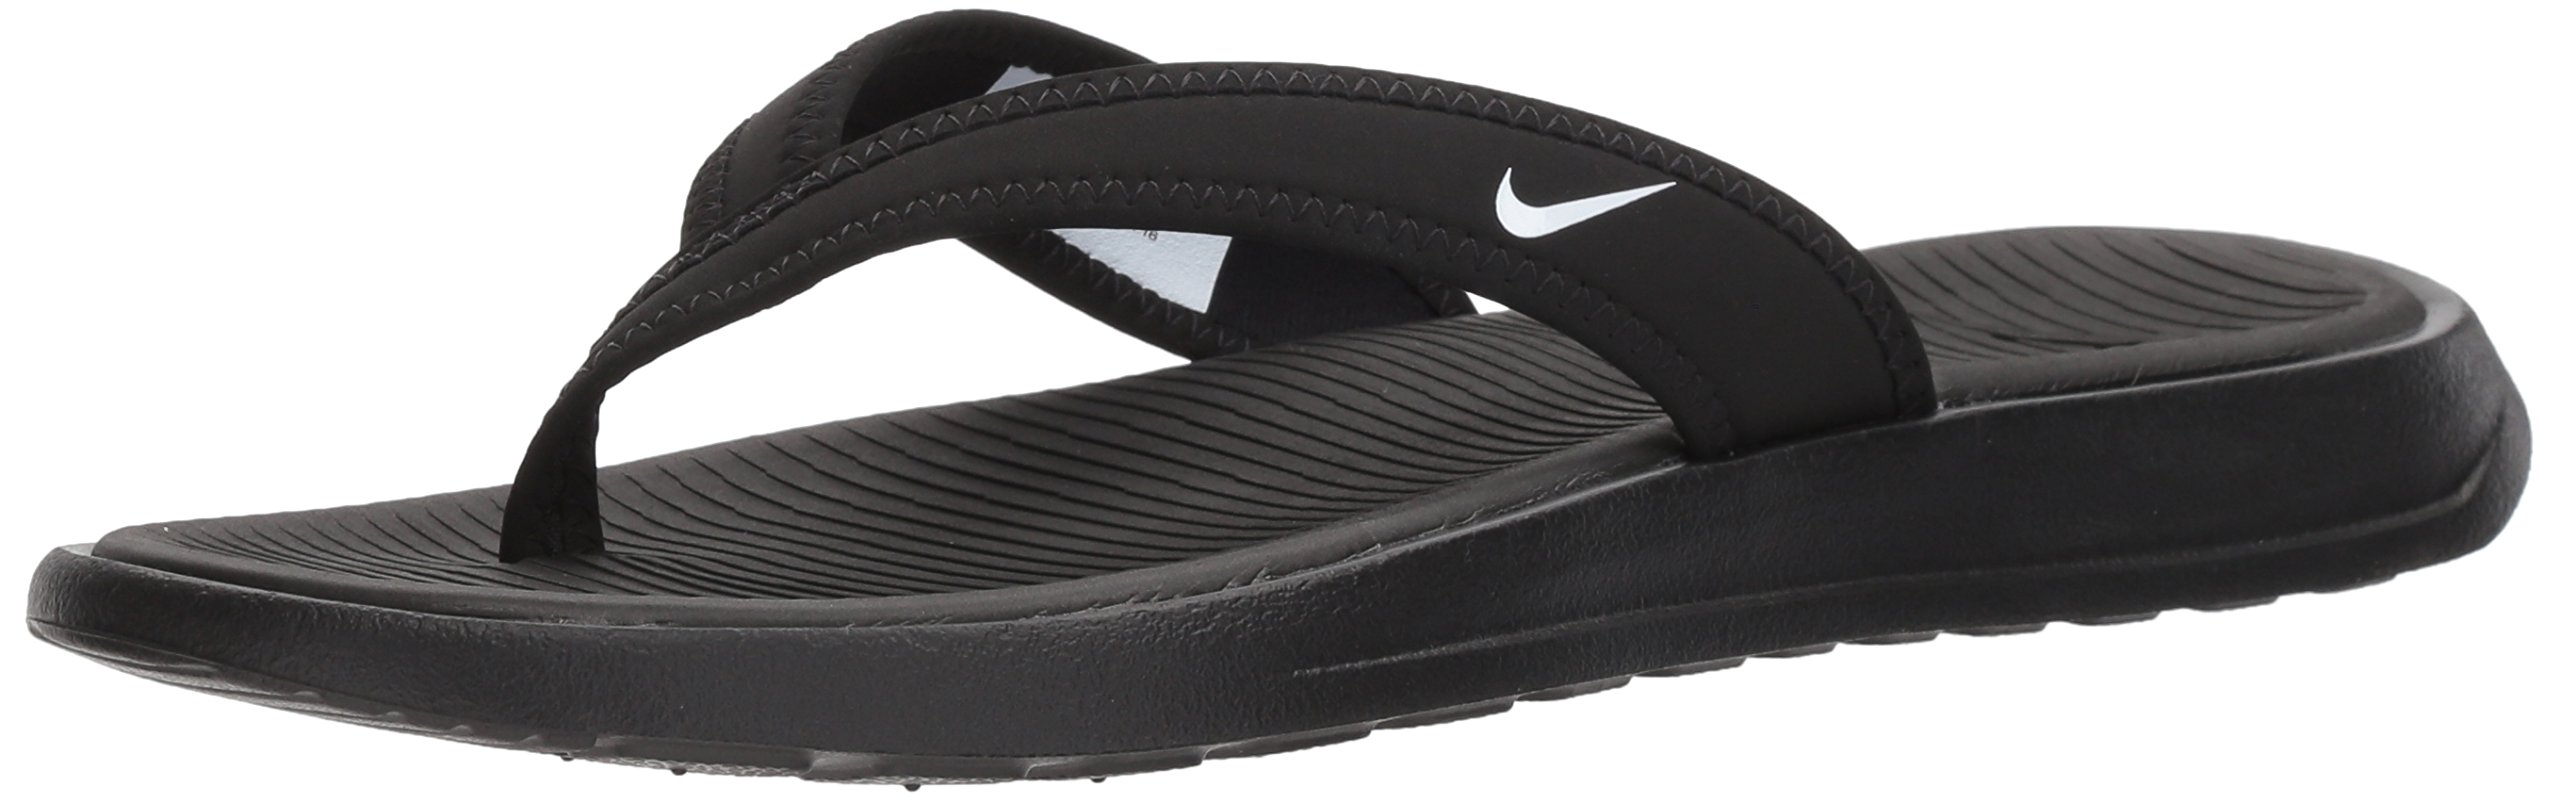 brand new 014b4 11e77 Get Quotations · NIKE Women s Ultra Celso Thong Flip-Flop